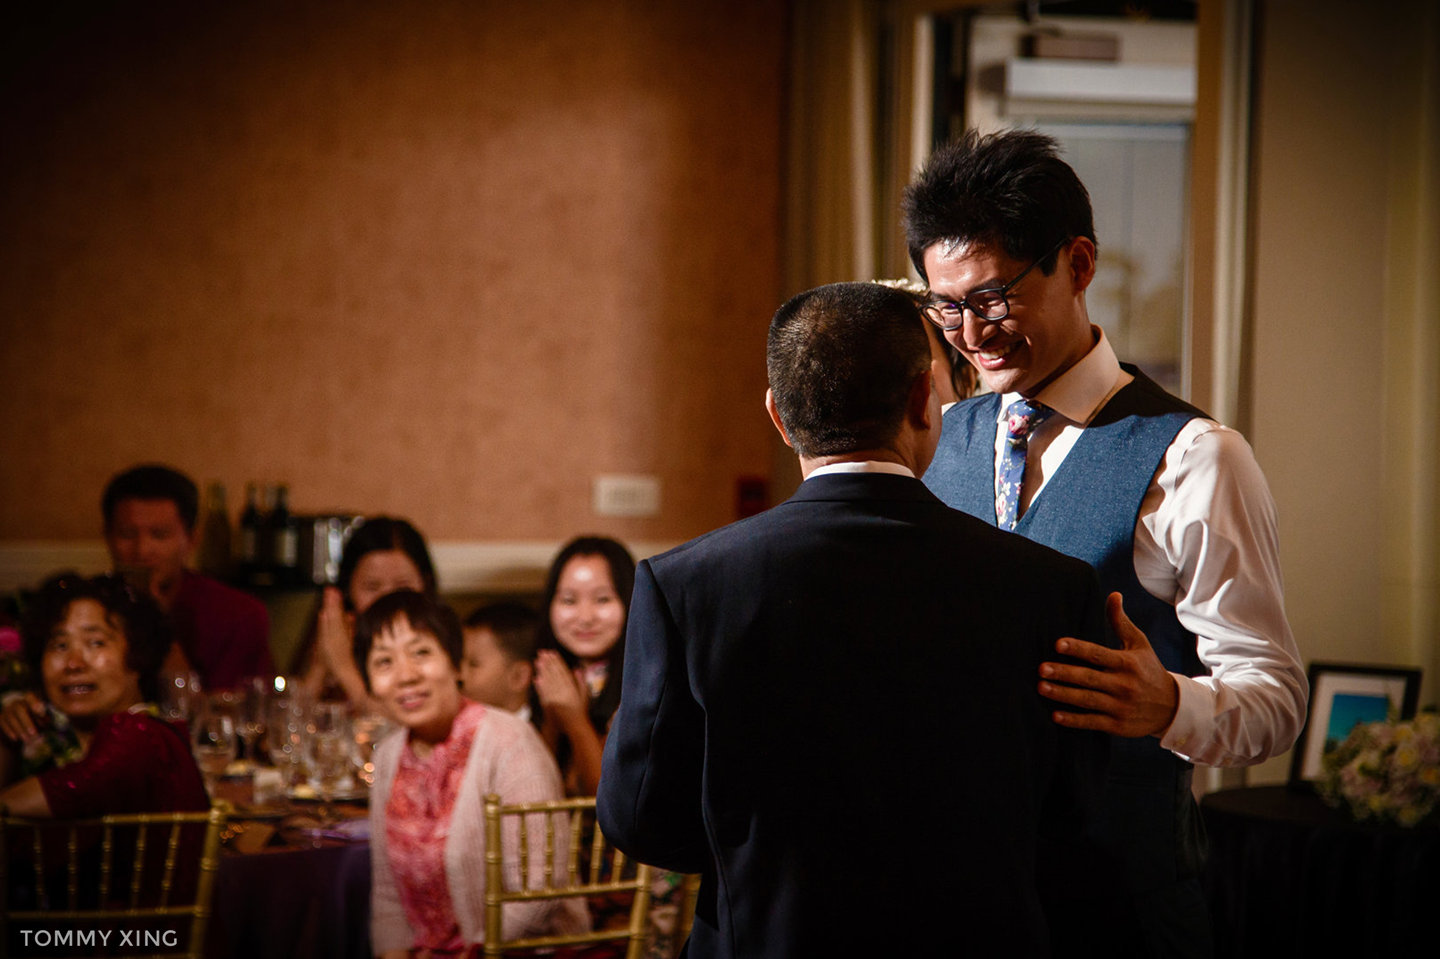 Paradise Point Resort Wedding Xiaolu & Bin San Diego 圣地亚哥婚礼摄影跟拍 Tommy Xing Photography 洛杉矶婚礼婚纱照摄影师 246.jpg